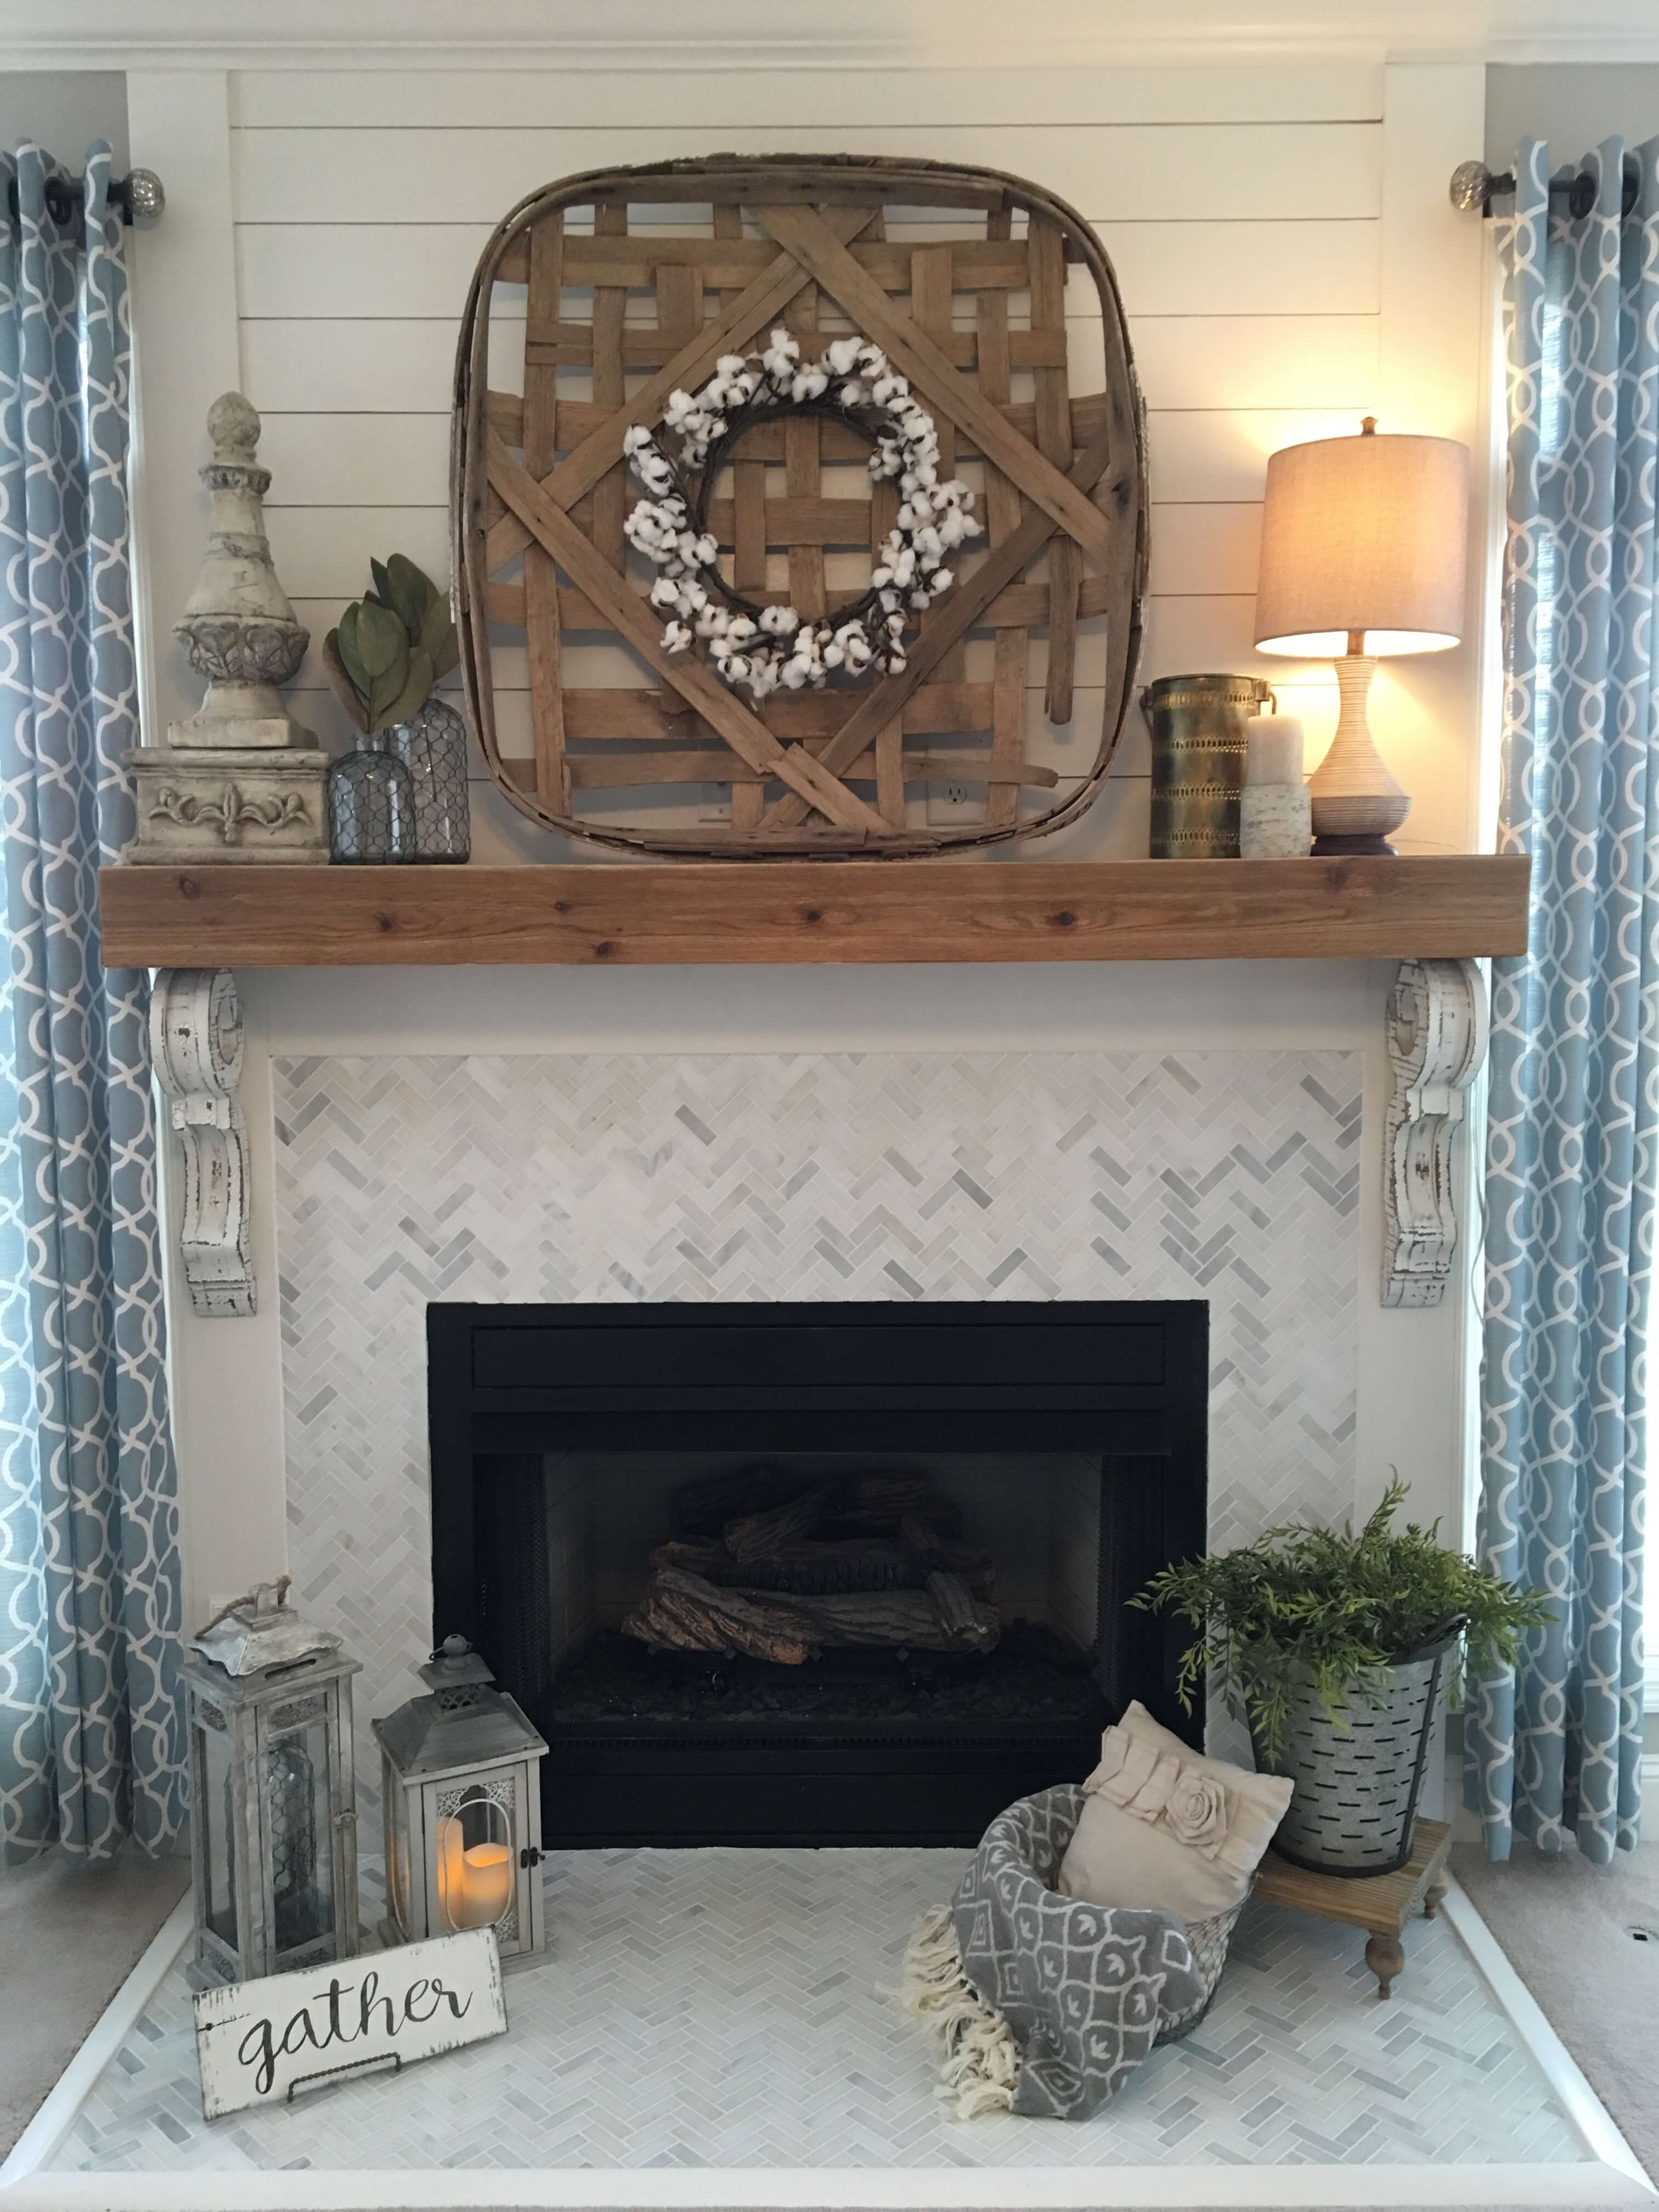 28 Best Farmhouse Mantel Decor Ideas And Designs For 2021